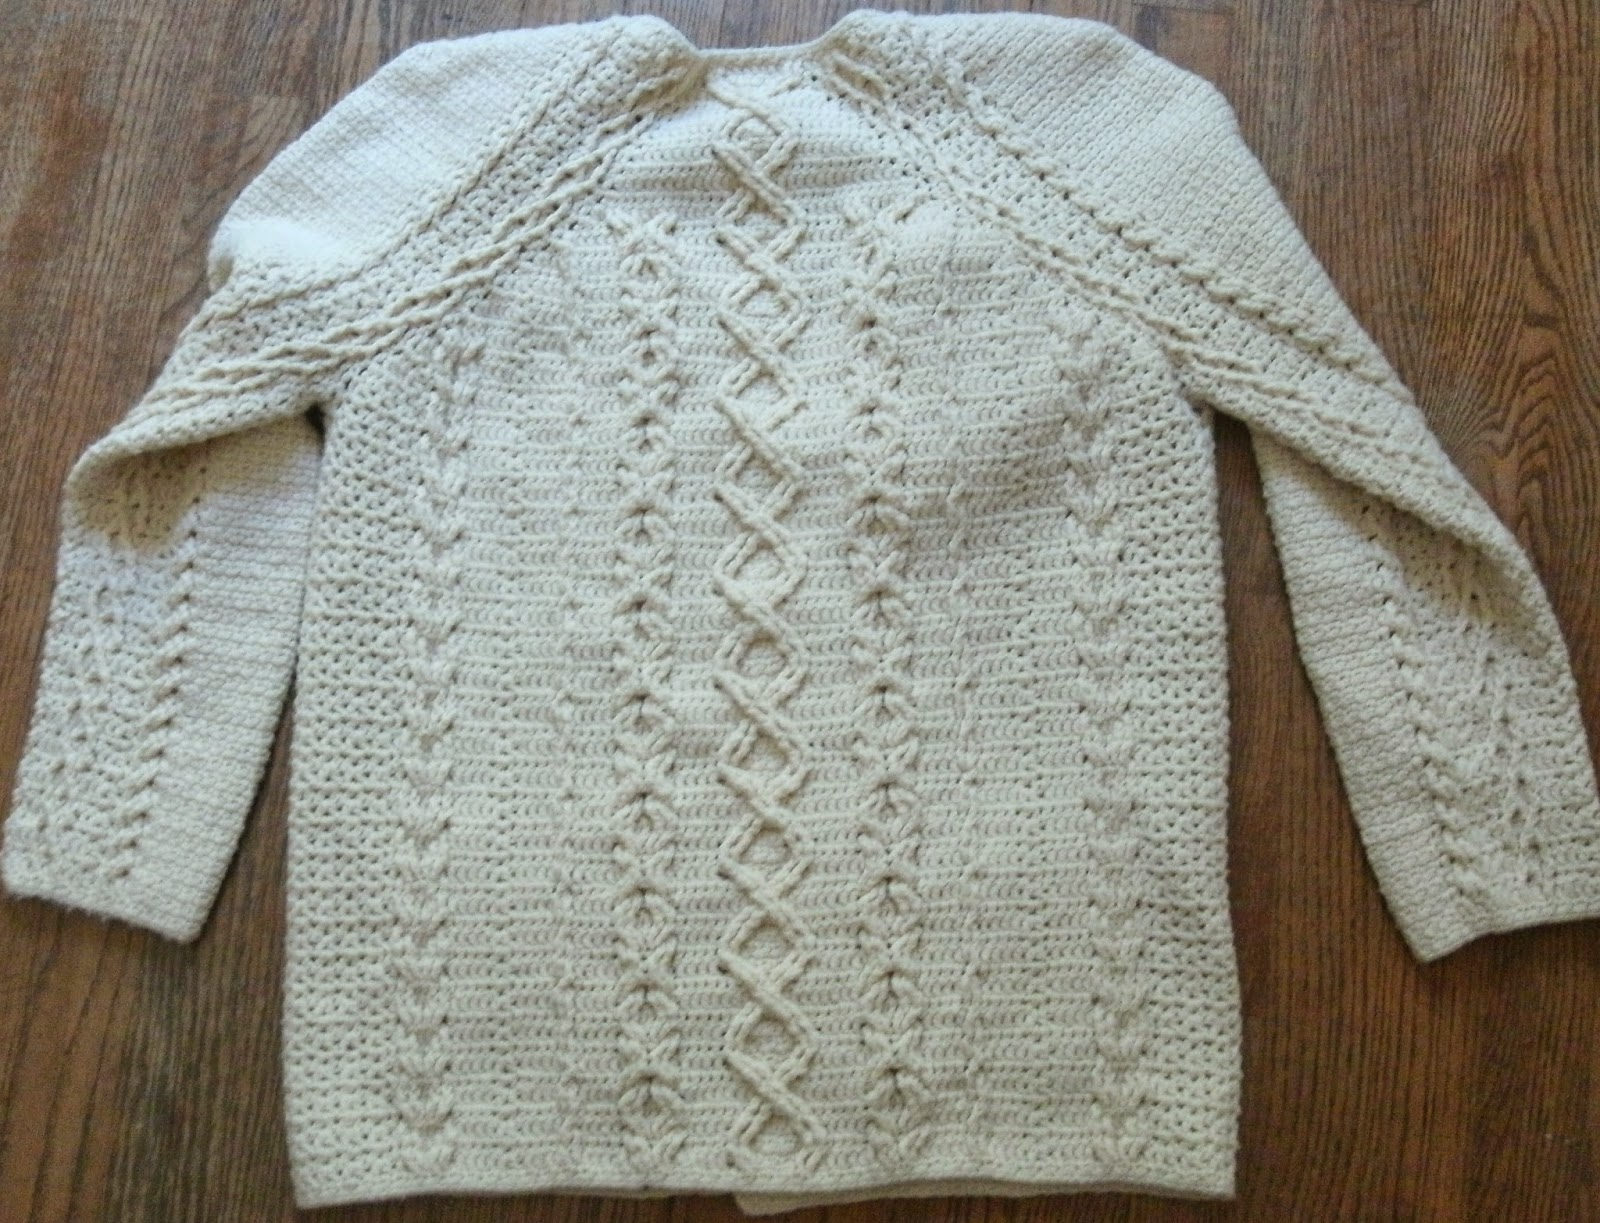 Then I Started Working Out The Specifics Of Topdown Construction And Threw  In Cables This One Has Increase Lines In The Regular Raglan Positions,